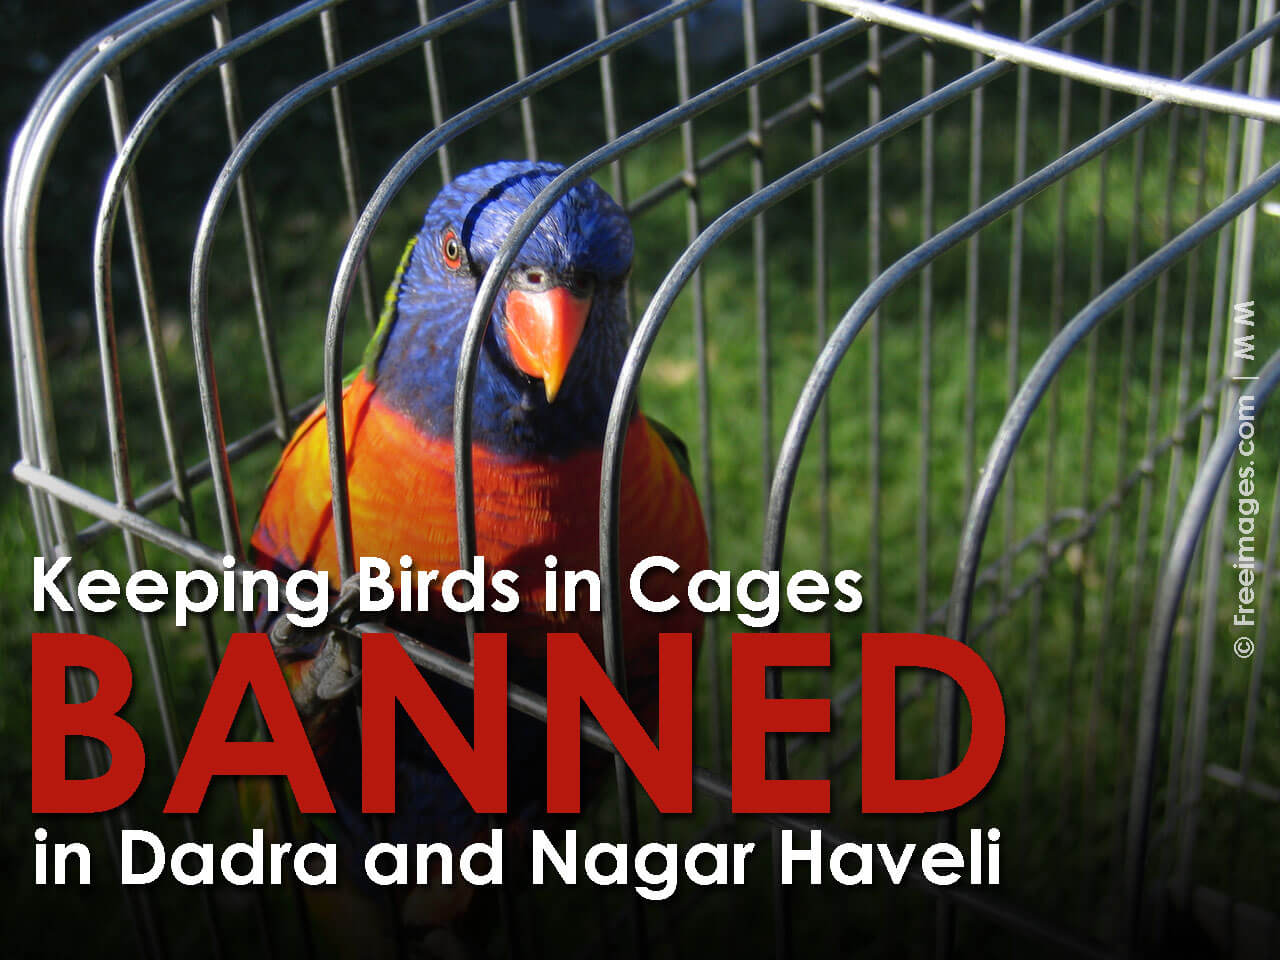 a-caged-life-1487636-1280x960Website_thumbnail